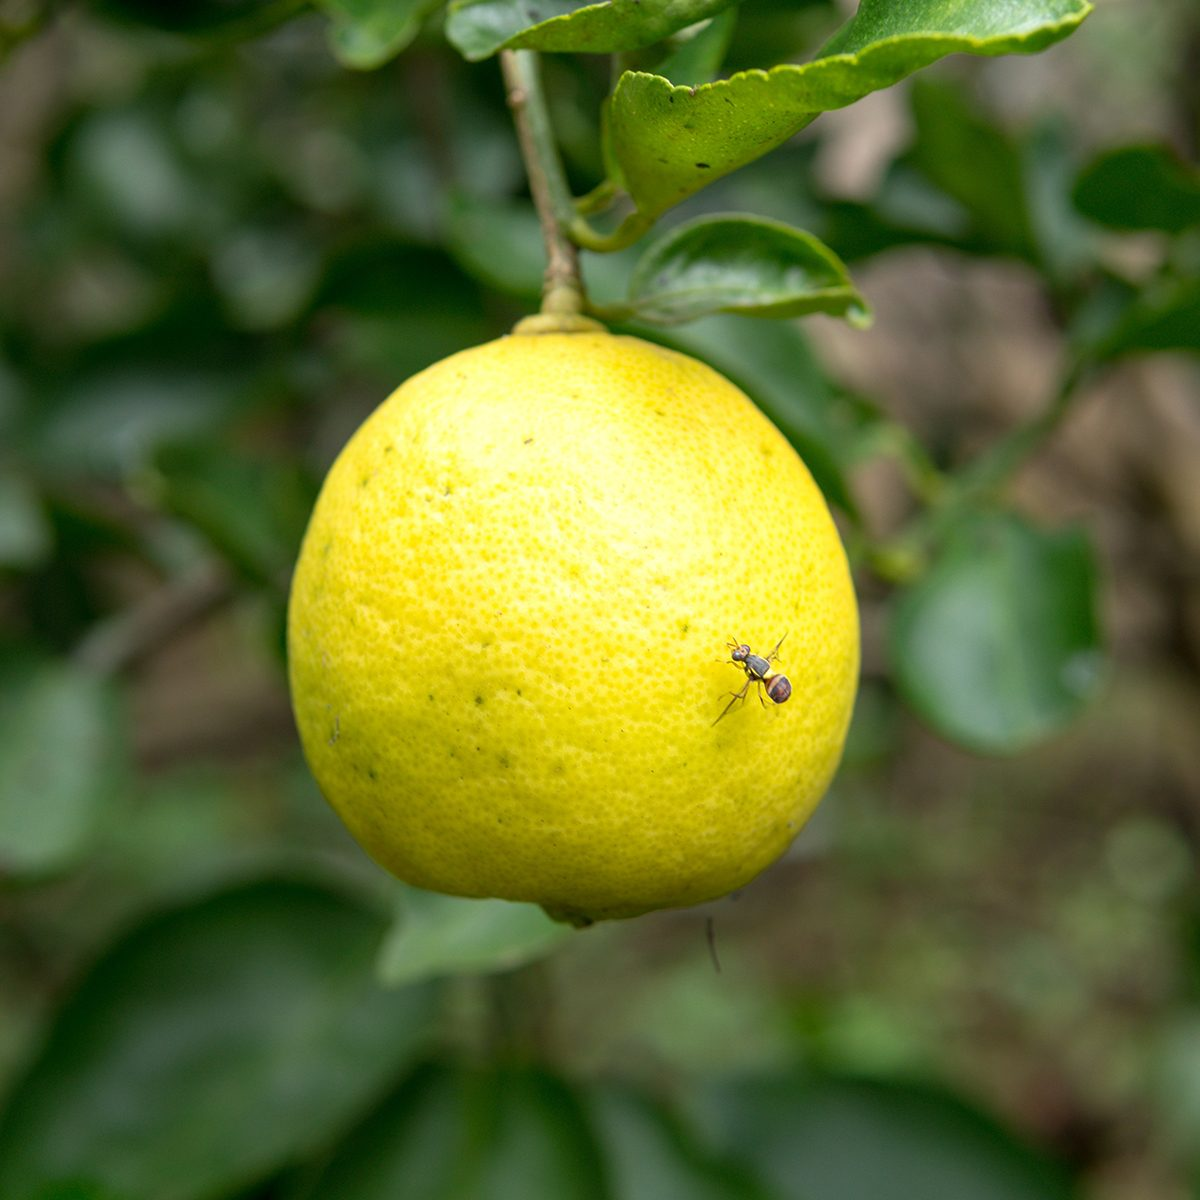 Bug on lemon in tree